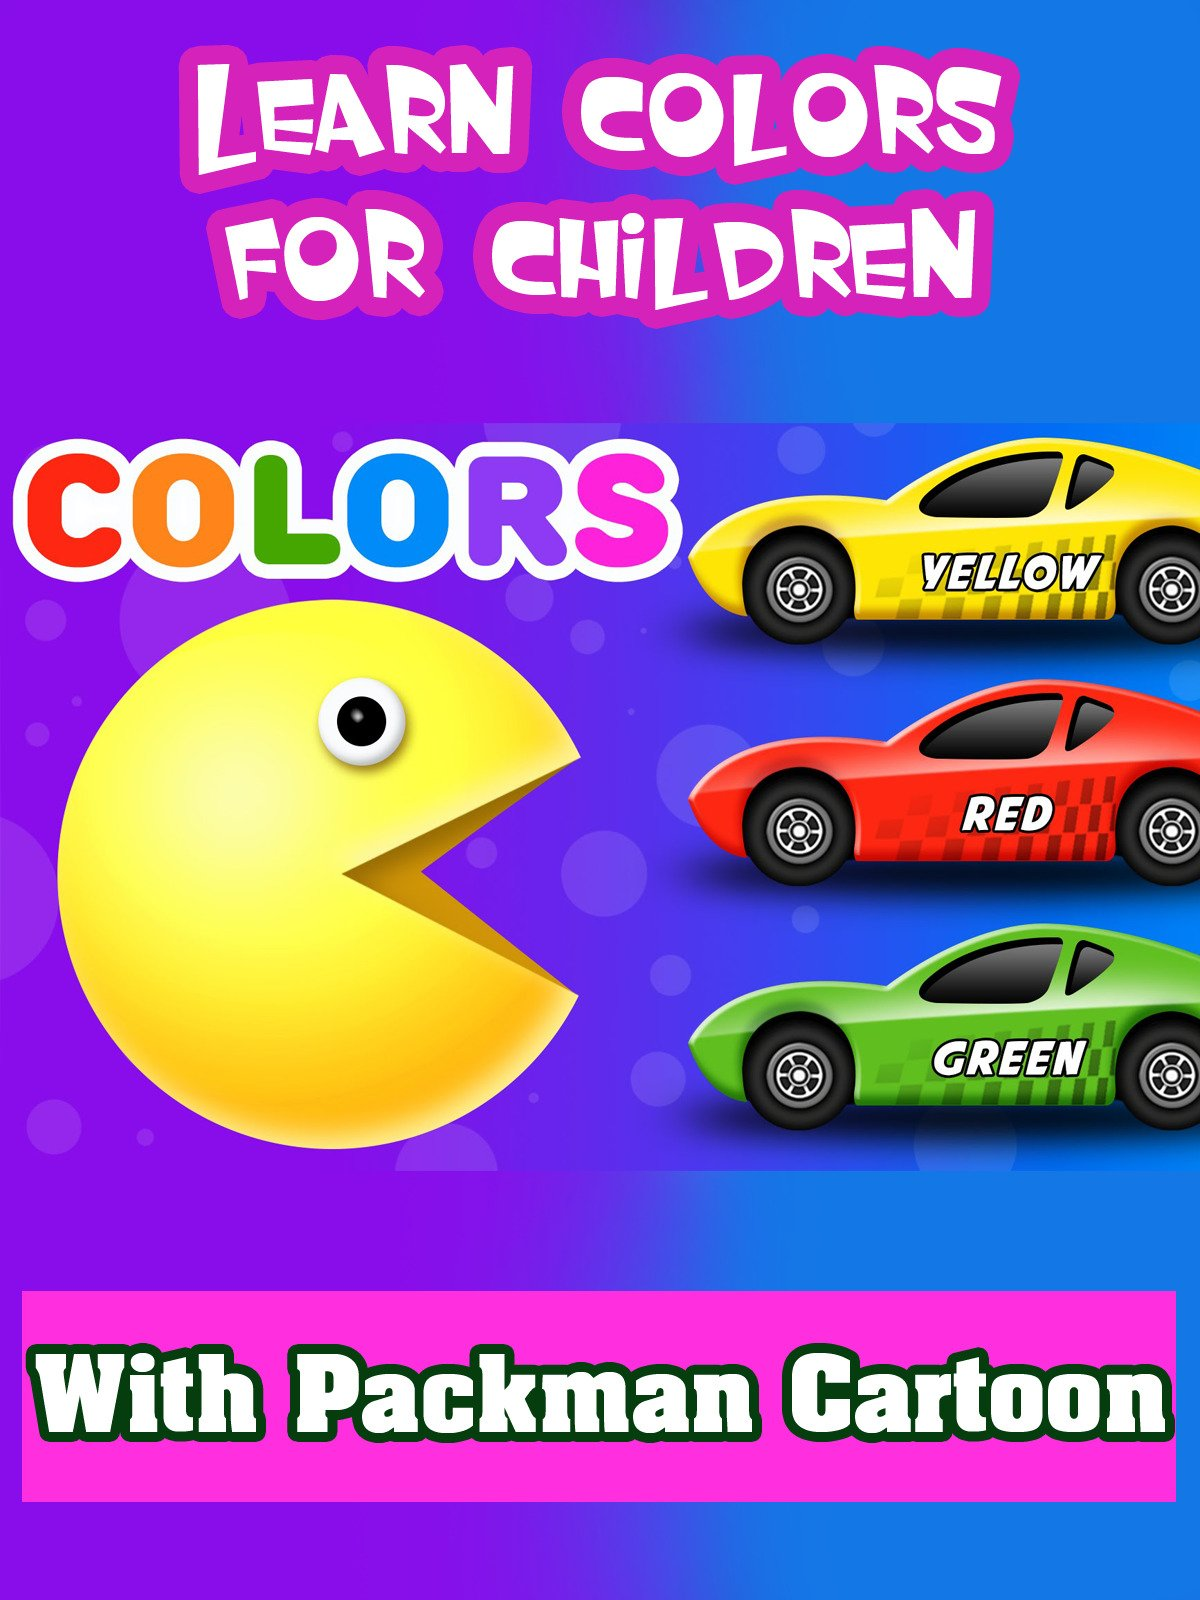 Learn Colors for Children with Packman Cartoon